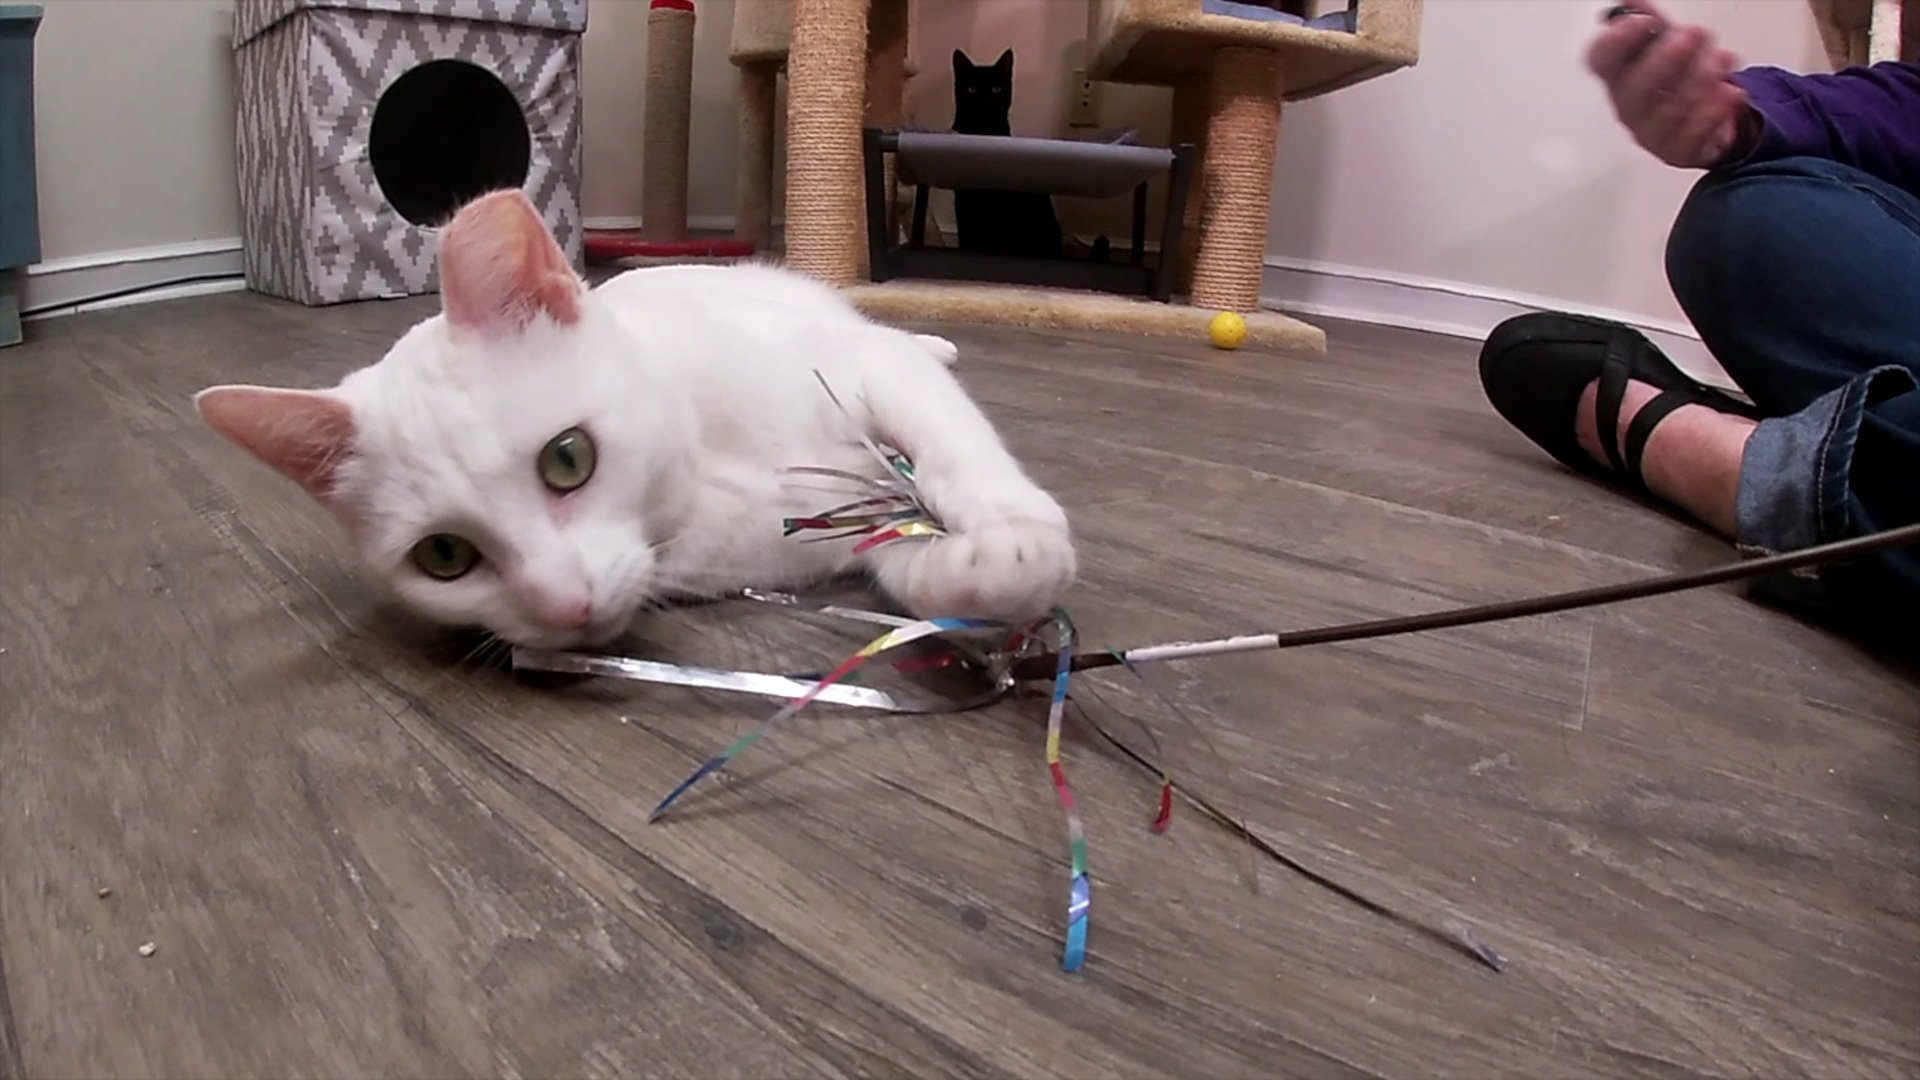 Sparkle Cat Rescue works to get cats adoption-ready with Jackson Galaxy 'Cat Pawsitive' program.